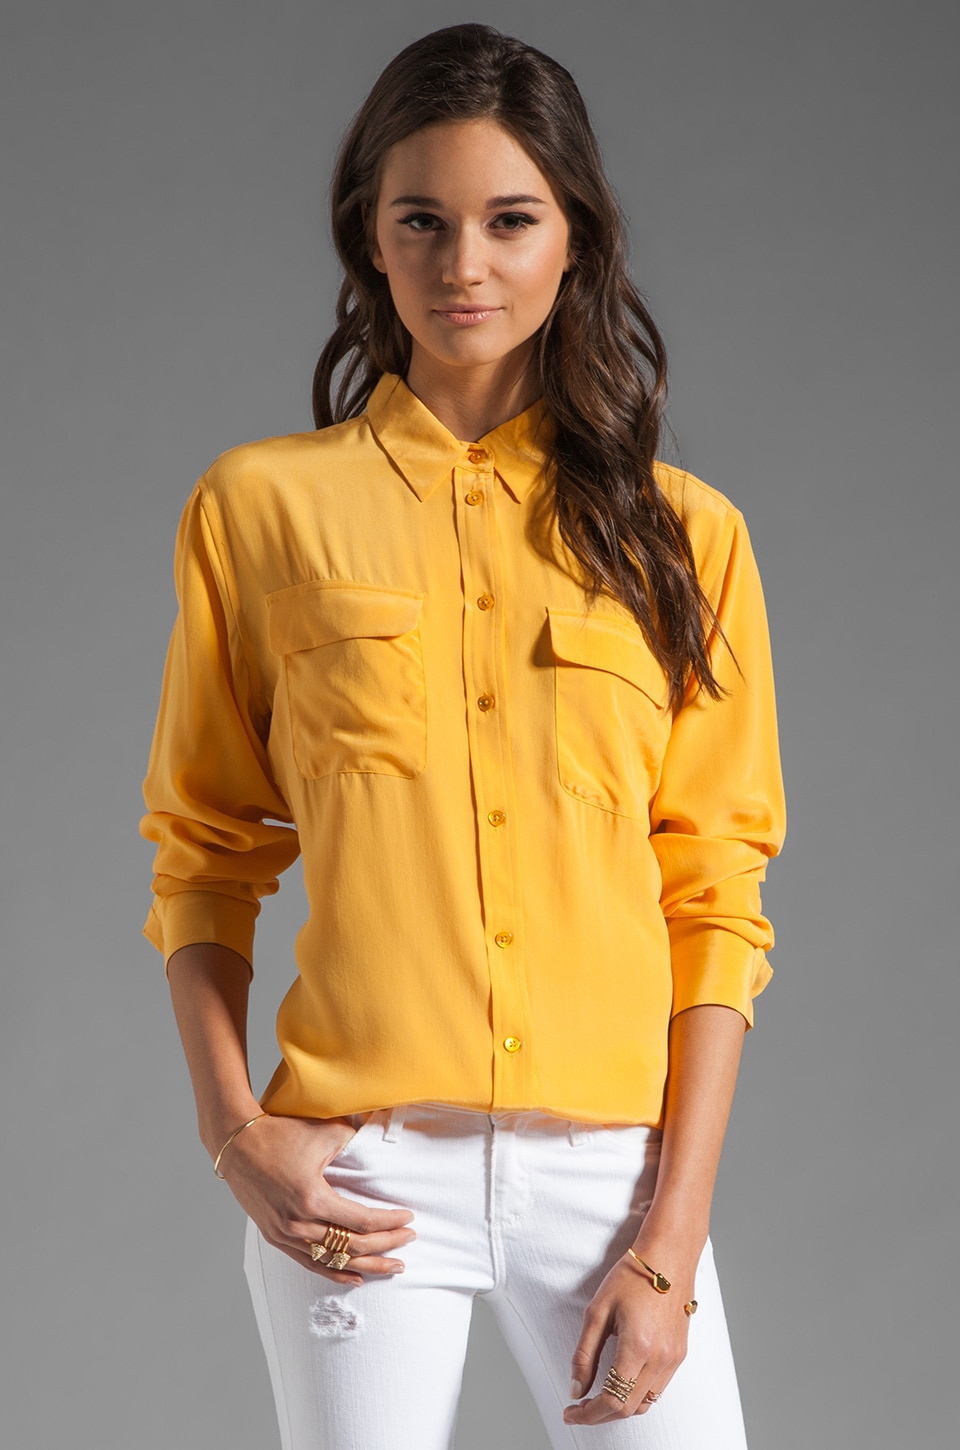 Equipment Signature Blouse in Golden Poppy